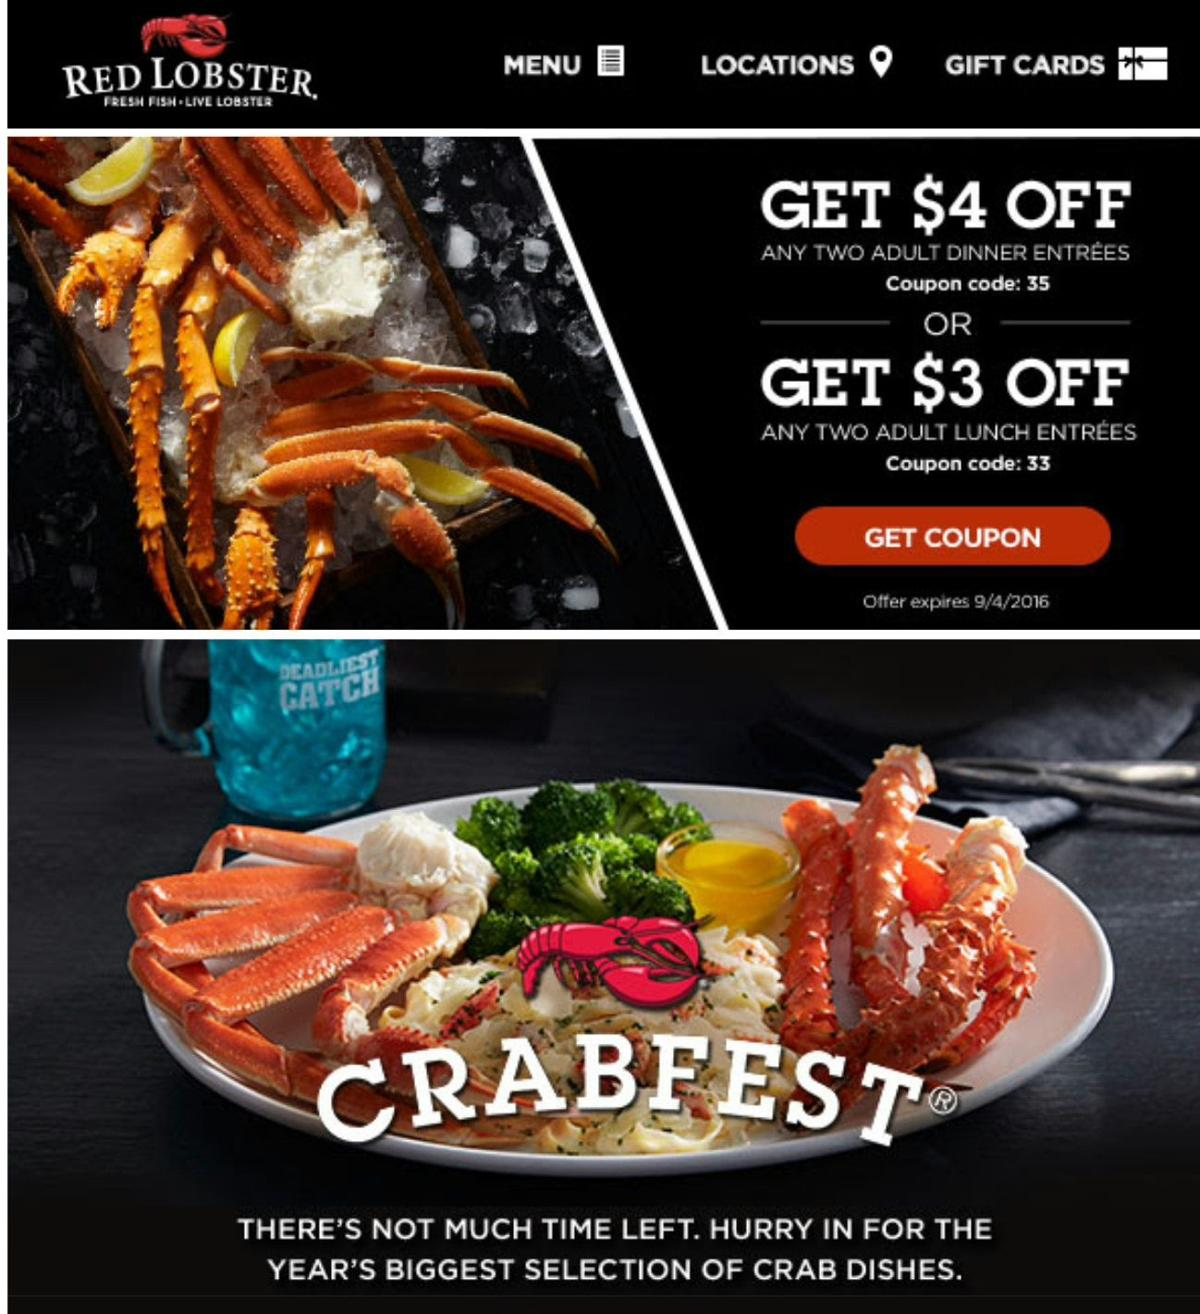 Red Lobster Specials - Menu Specials Red Lobster Seafood Restaurants | Party ...